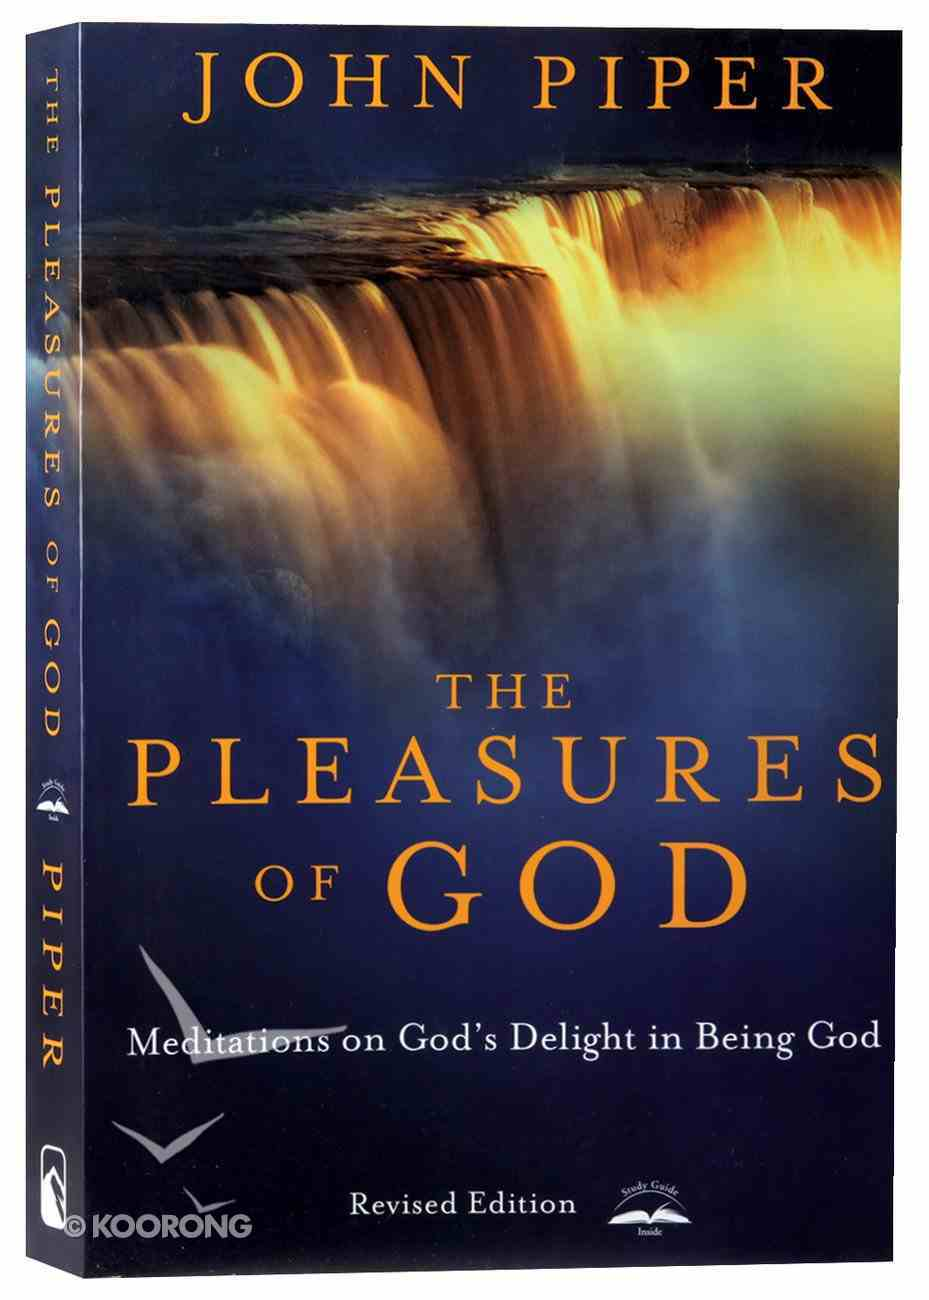 The Pleasures of God (And Expanded) Paperback